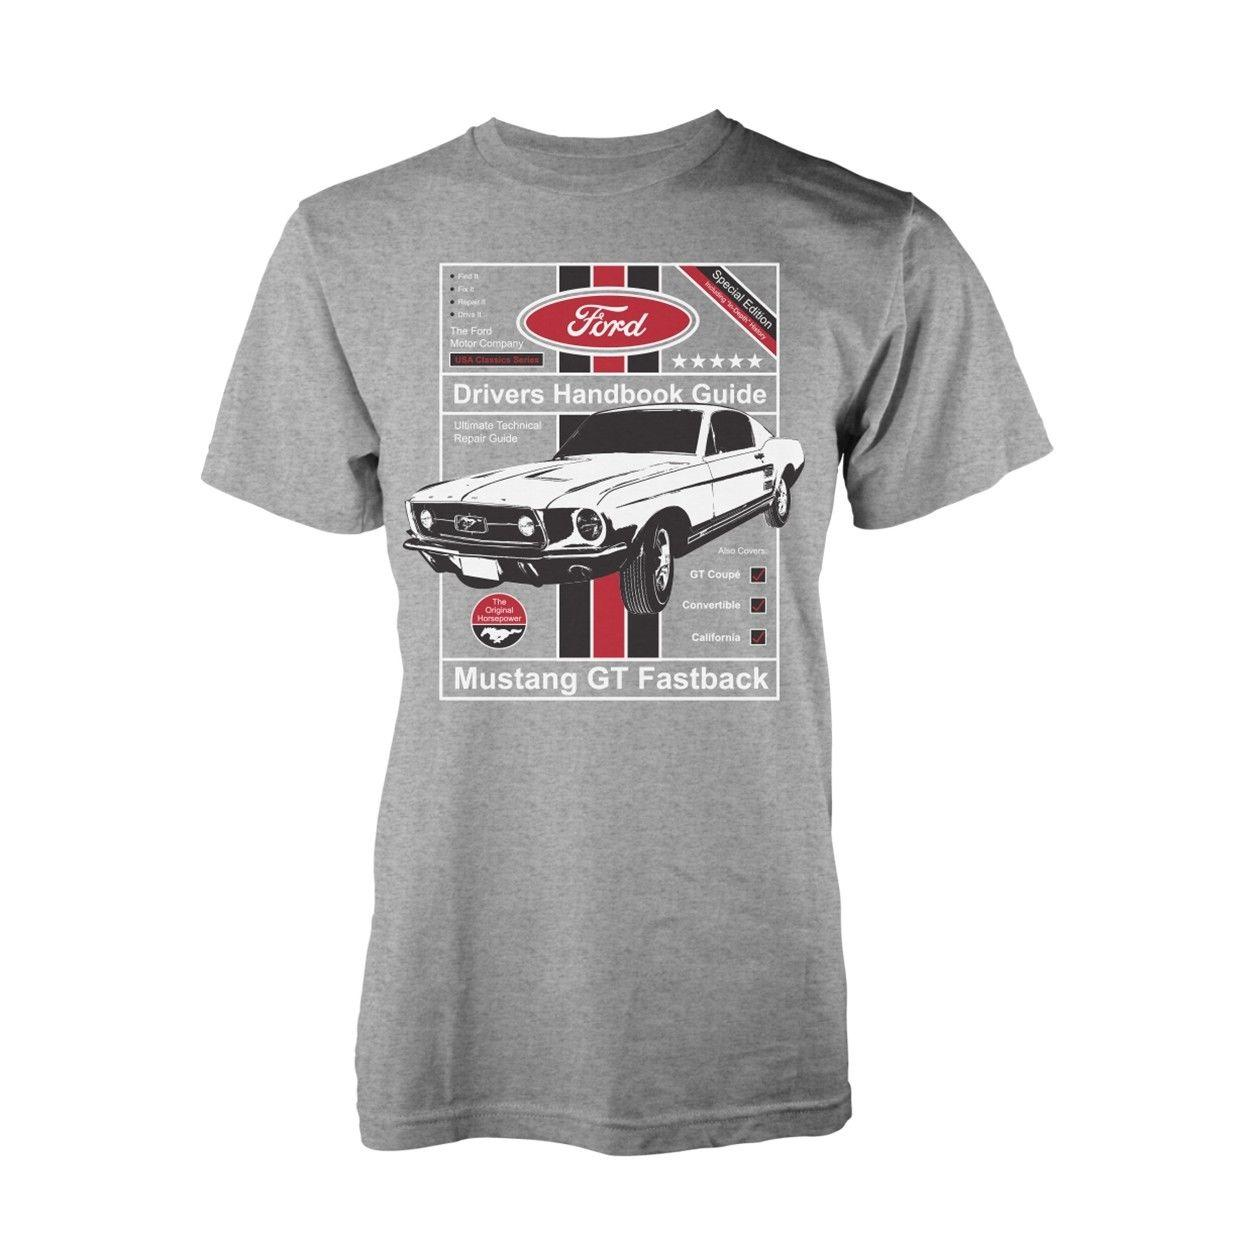 89fd3a65 Ford 1965 Mustang Muscle Car Manual T Shirt Officiel Hommes Patriotic T  Shirts Funny Tshirt From Teestotal, $11.01| DHgate.Com